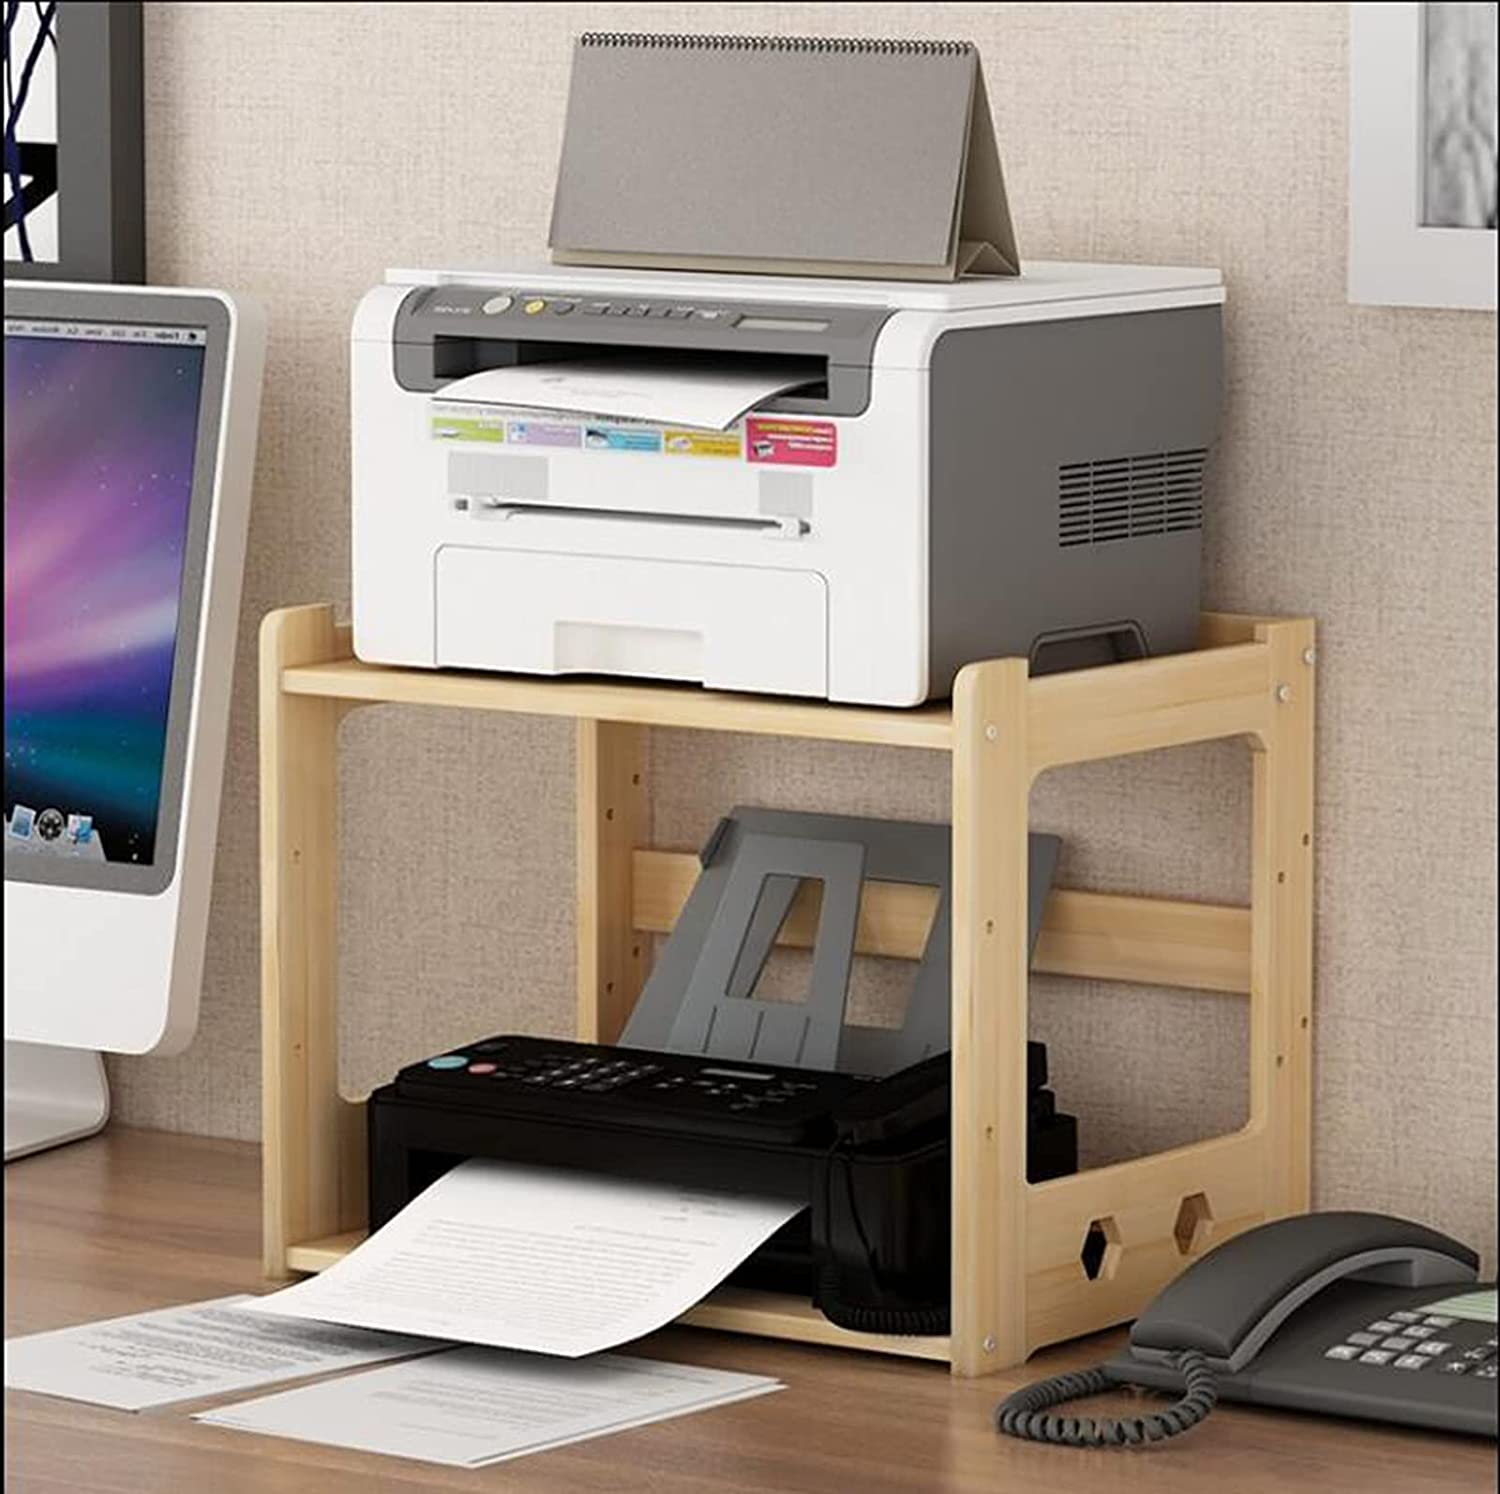 Super special price Cajolg Modern Simple Multi Layer Wooden Shredder Stand Rack Houston Mall Copy